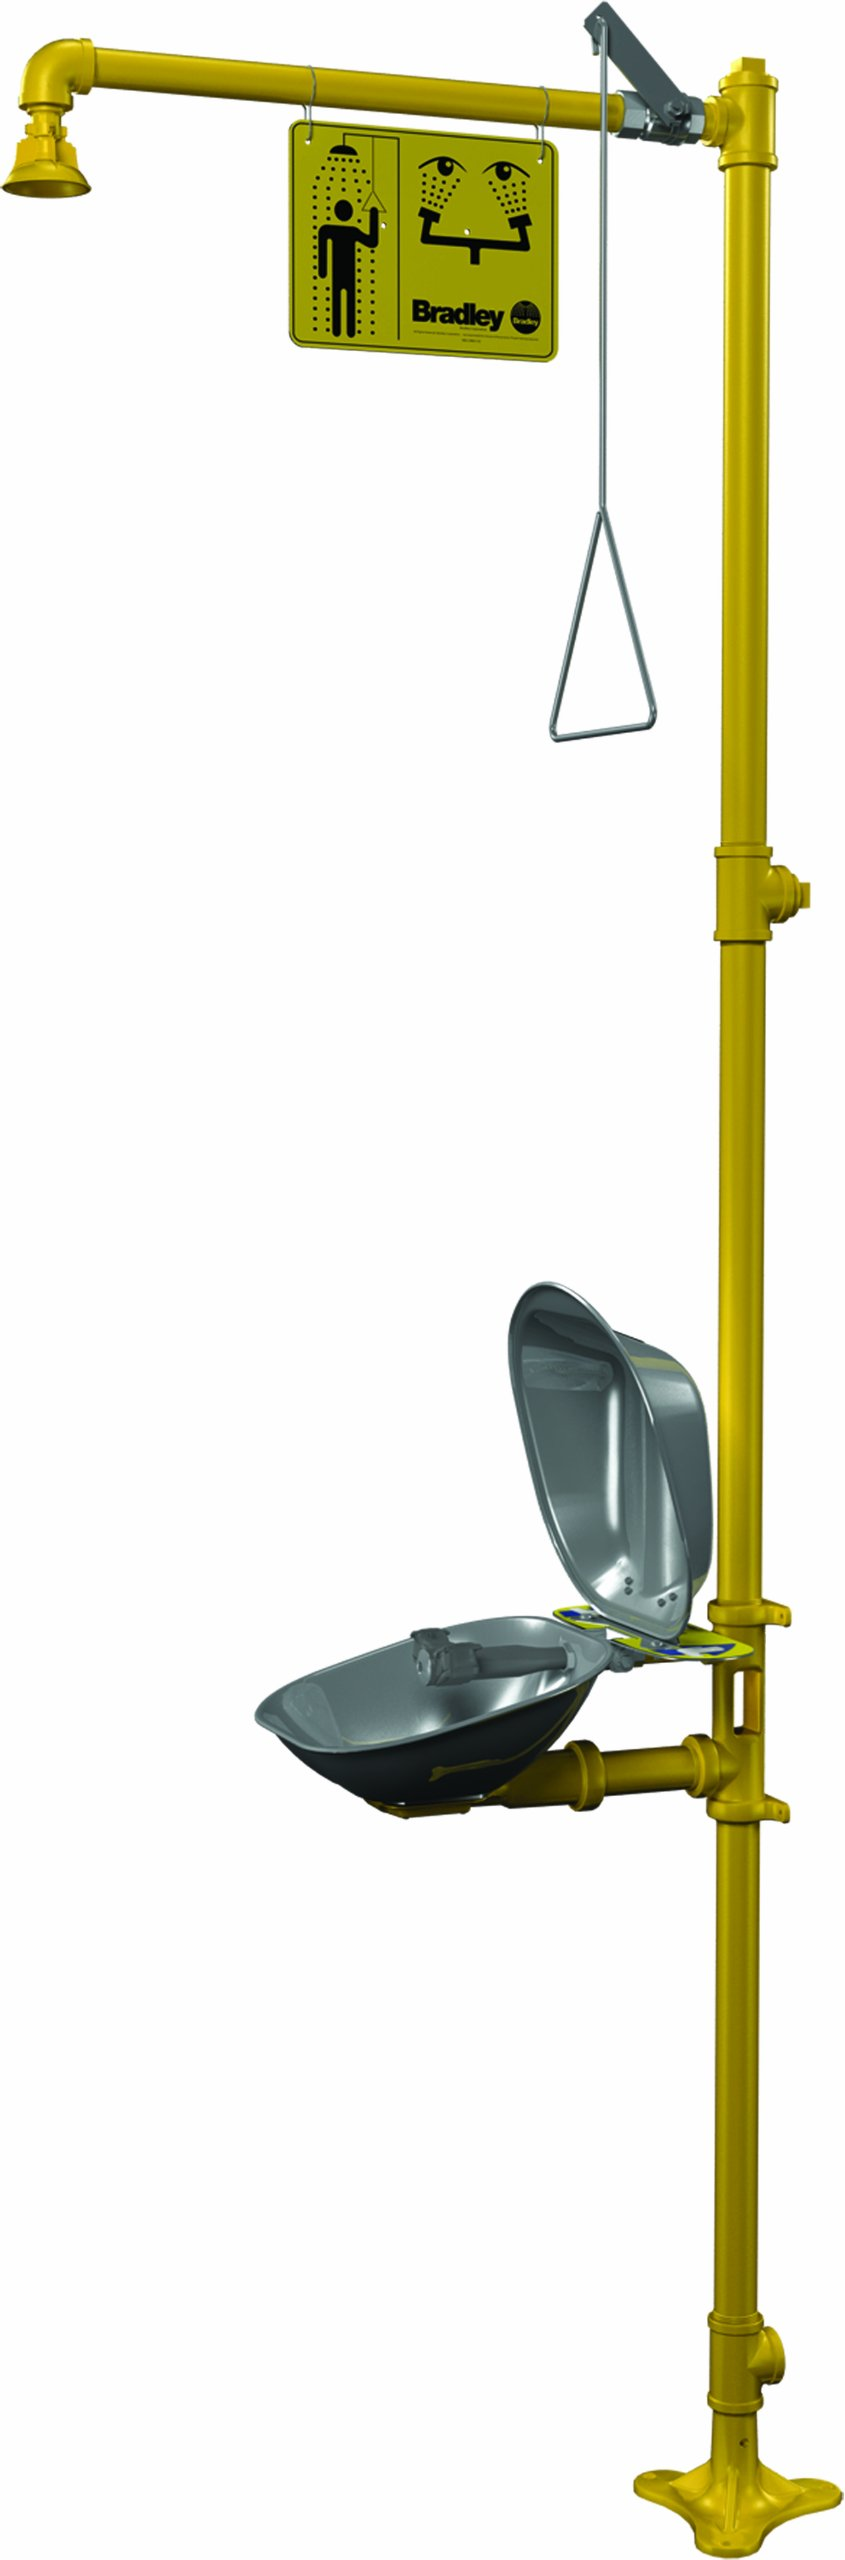 Bradley S19-310DC Galvanized Steel 3 Spray Head Combination Drench Shower and Eyewash Unit with Stainless Steel Bowl and Hinged Dust Cover, 20 GPM, 10-3/4'' Width x 90-1/2'' Height x 25-3/8'' Depth, Yellow